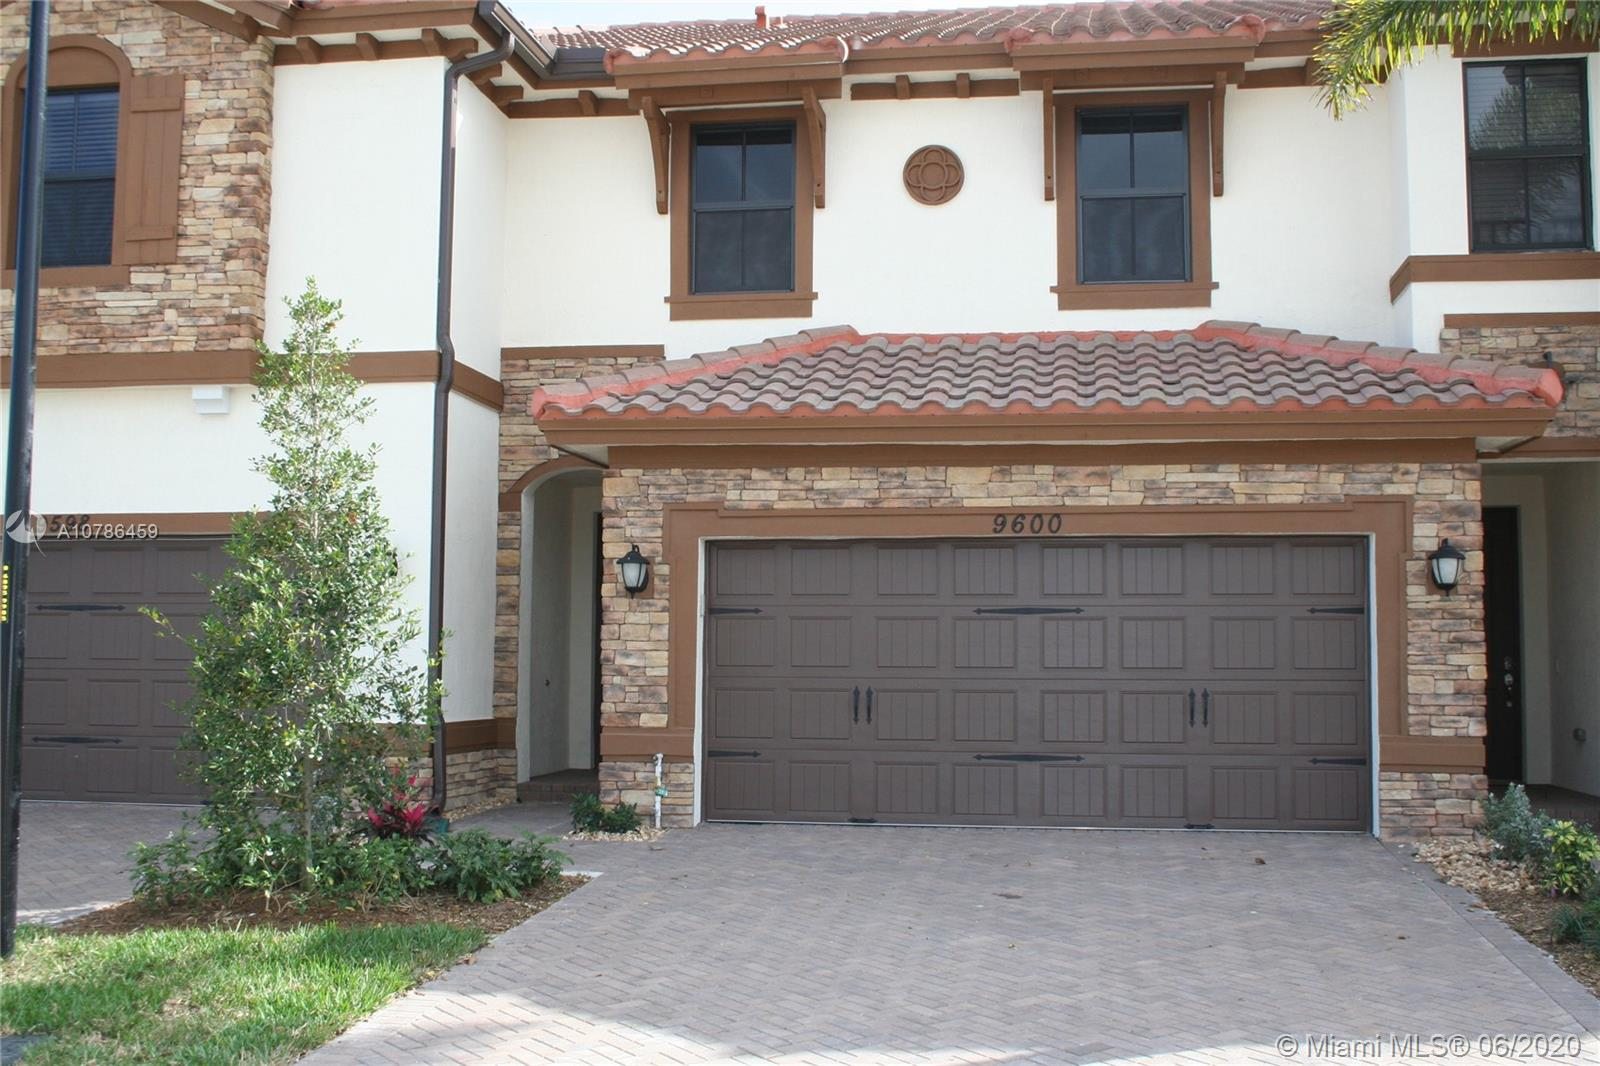 Beautiful townhome, located on a great community of Miralago.with 3 bedrooms 2 1/2 bathrooms, Impact windows and doors. First floor with ceramic tile thru out. Fenced backyard. Amenities include resort style clubhouse with 24.000 sq ft, swimming pool, splash park , fitness center, aerobic center, ballroom, spa, tennis/basketball court. A rated schools.